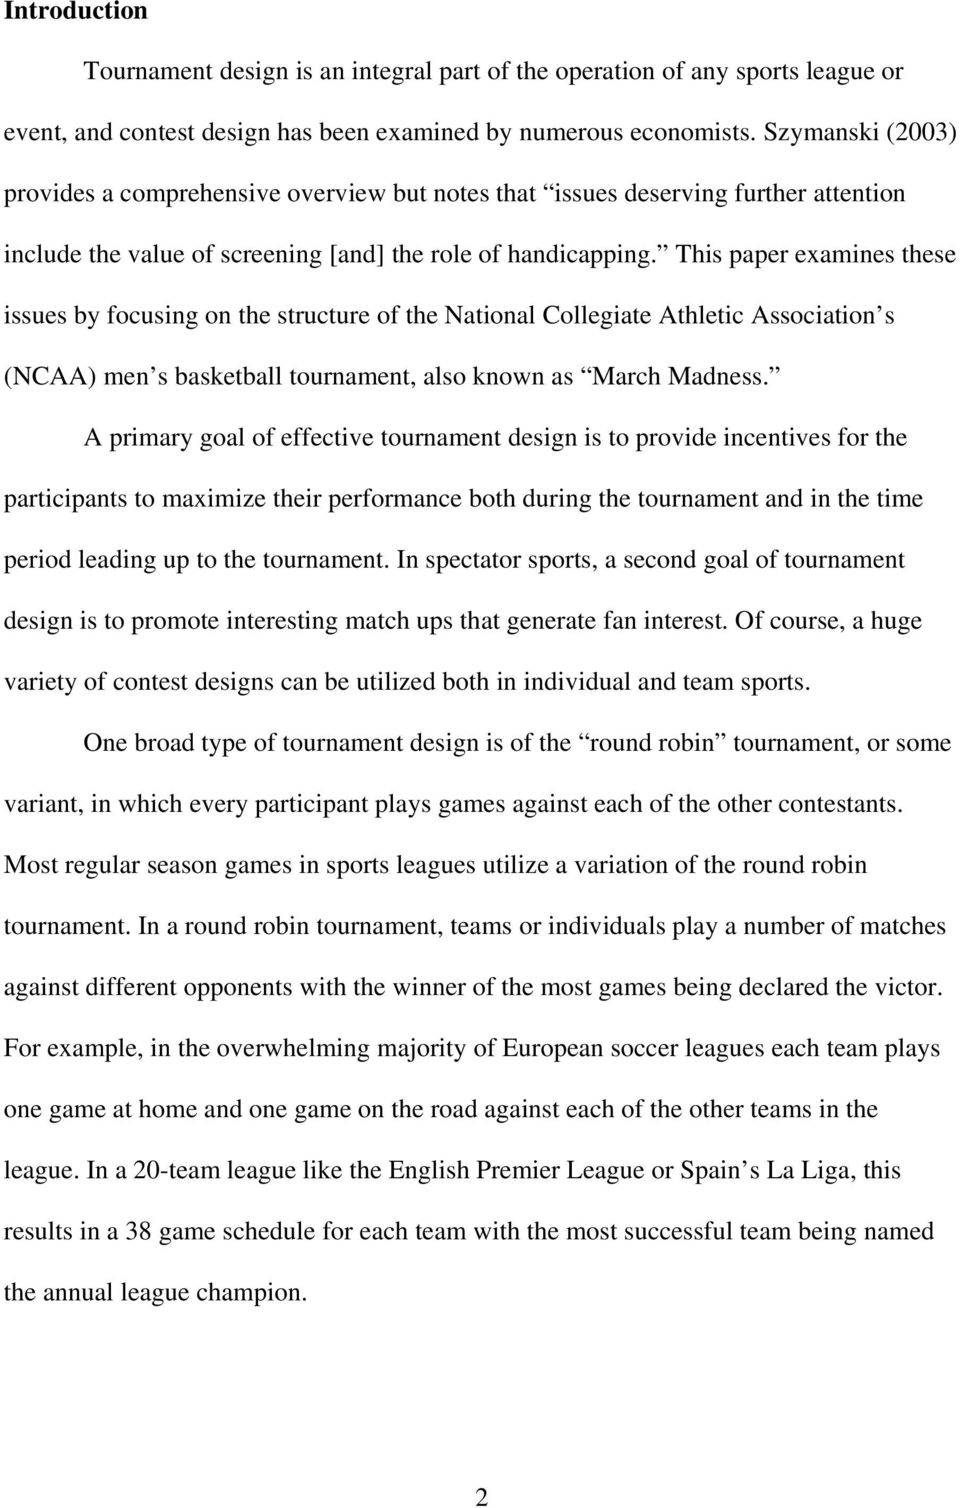 This paper examines these issues by focusing on the structure of the National Collegiate Athletic Association s (NCAA) men s basketball tournament, also known as March Madness.